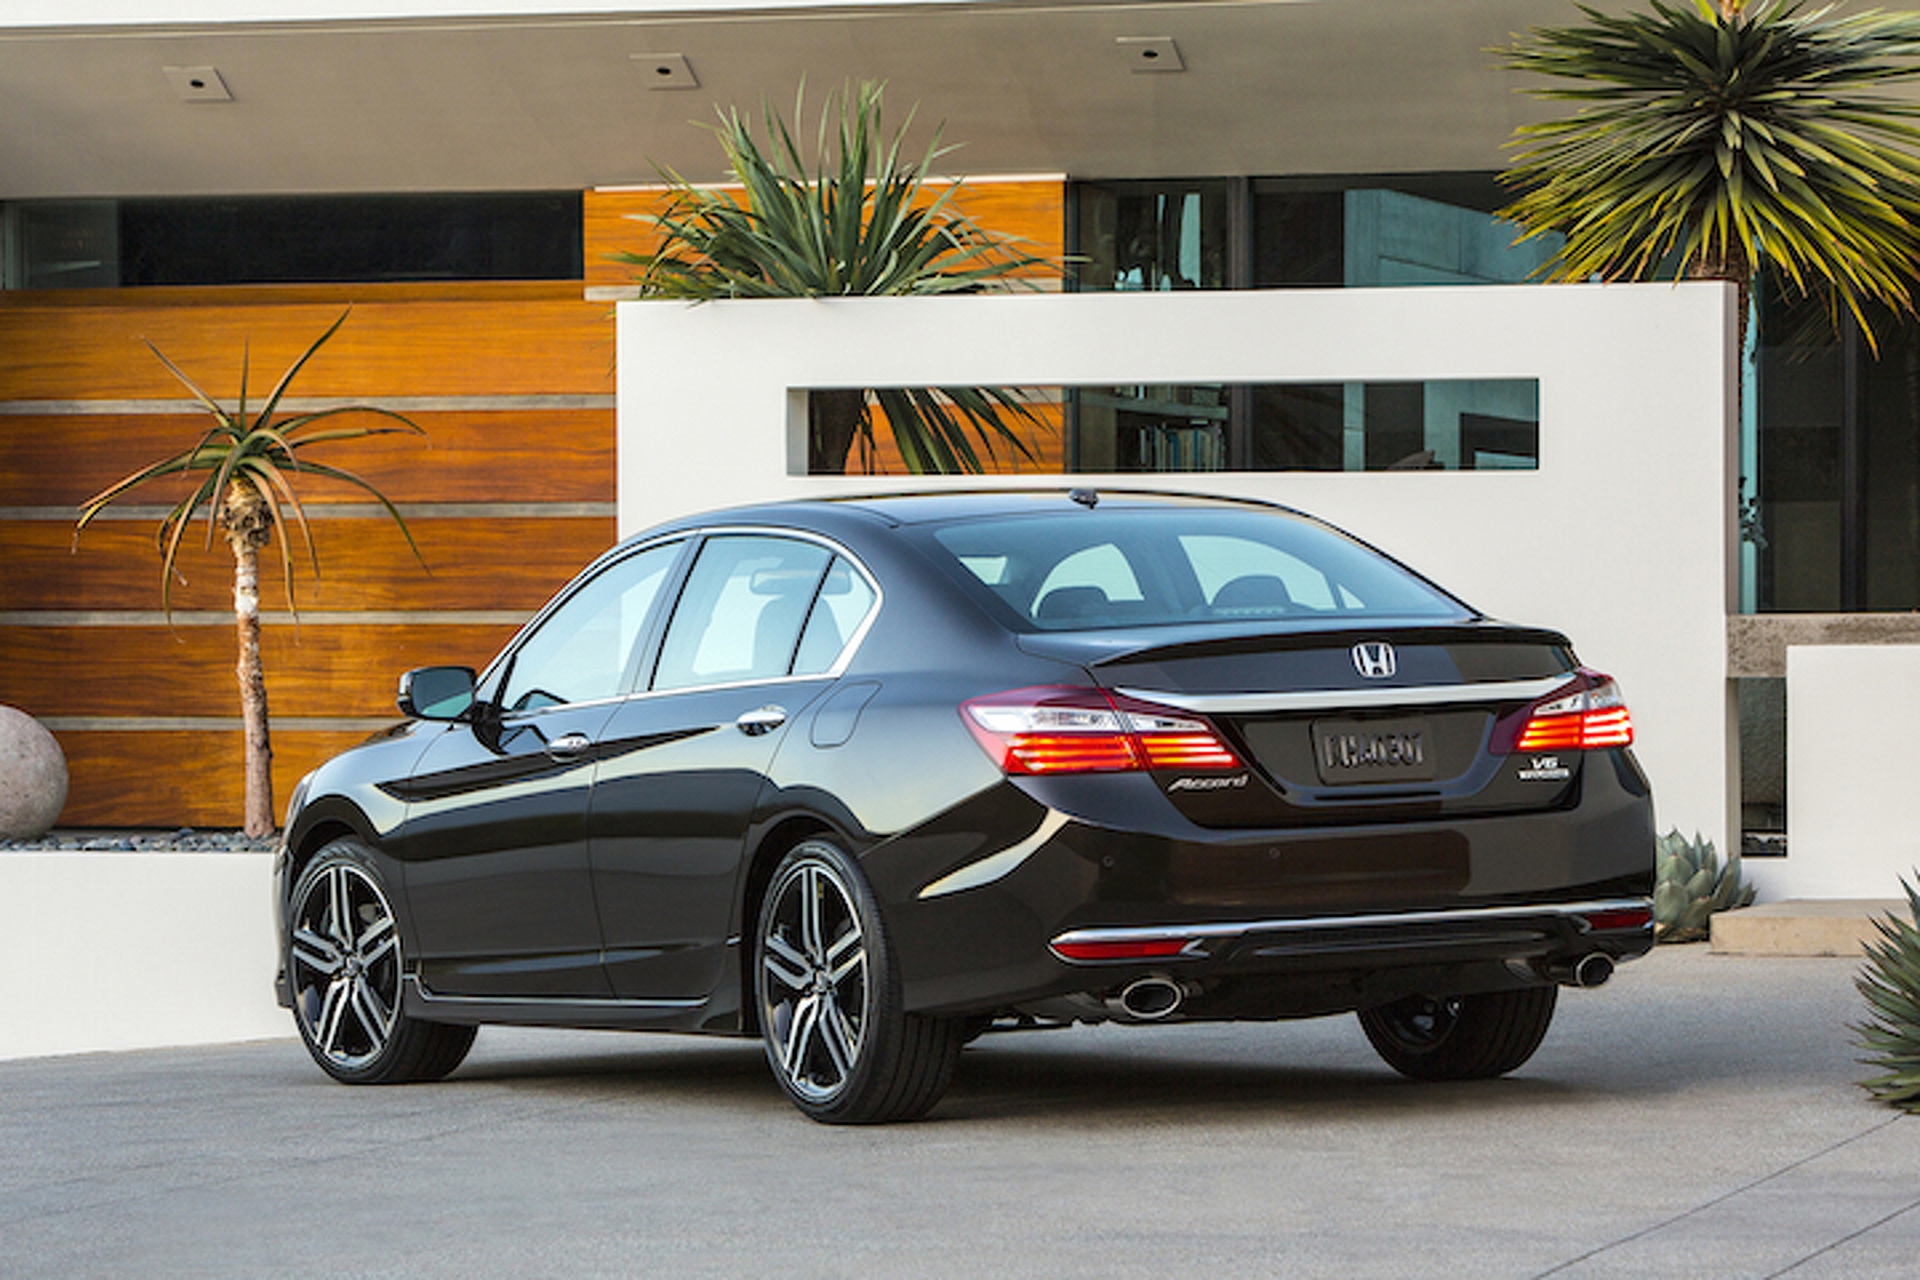 5 New Features on the 2016 Honda Accord